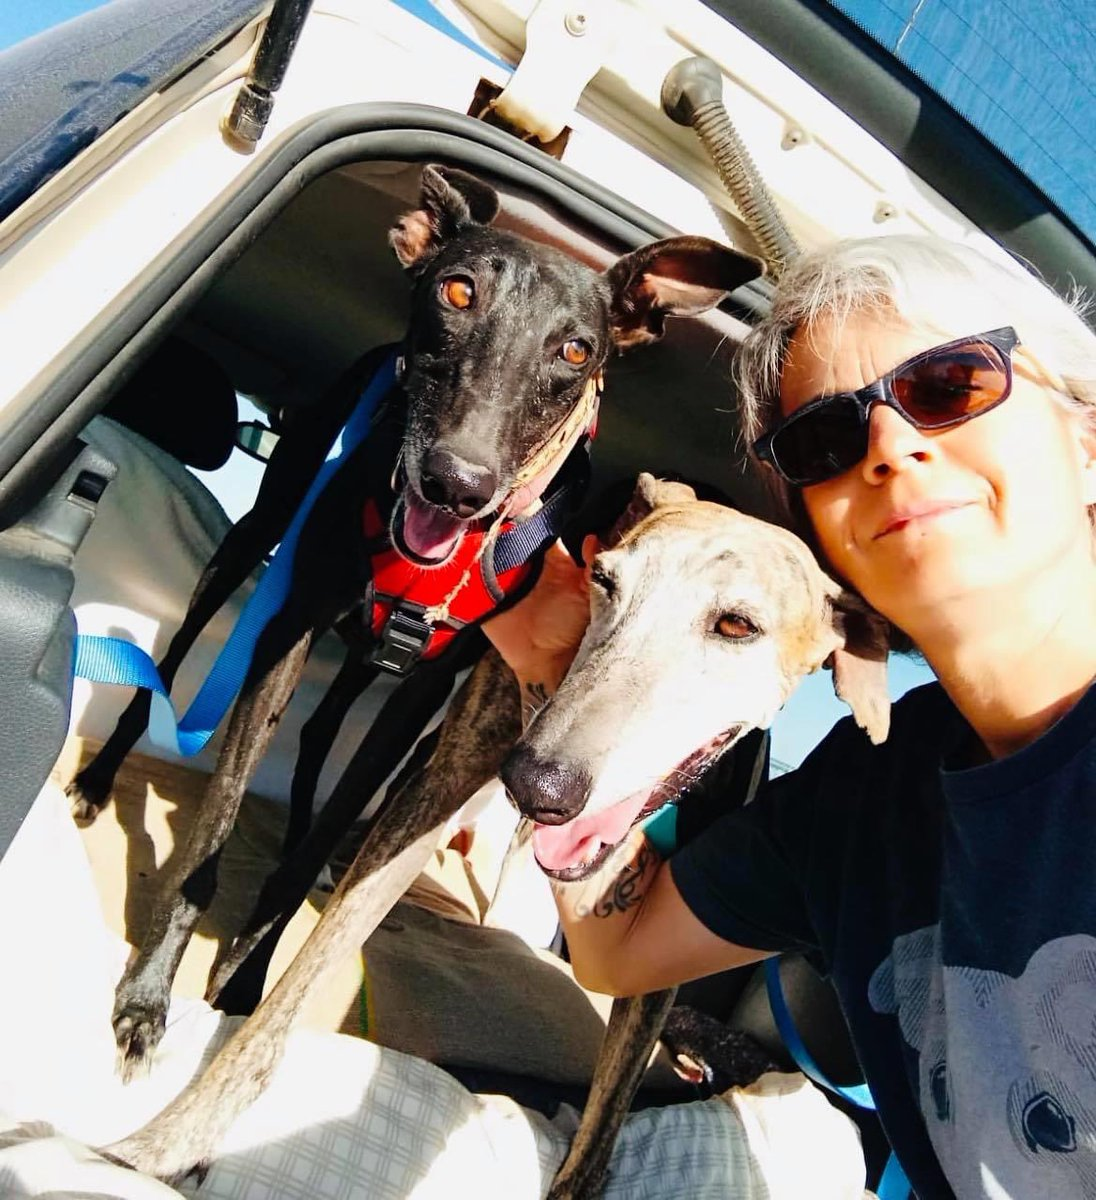 Guess who left today?💥Finally Azabache & Montaña have gone to a home together here in Spain. Both leish positive dogs & Azabache has issues from when she had distemper as a puppy so we are delighted 2 hard to rehome dogs have a chance 🥰 From Street life to sweet life 🌟